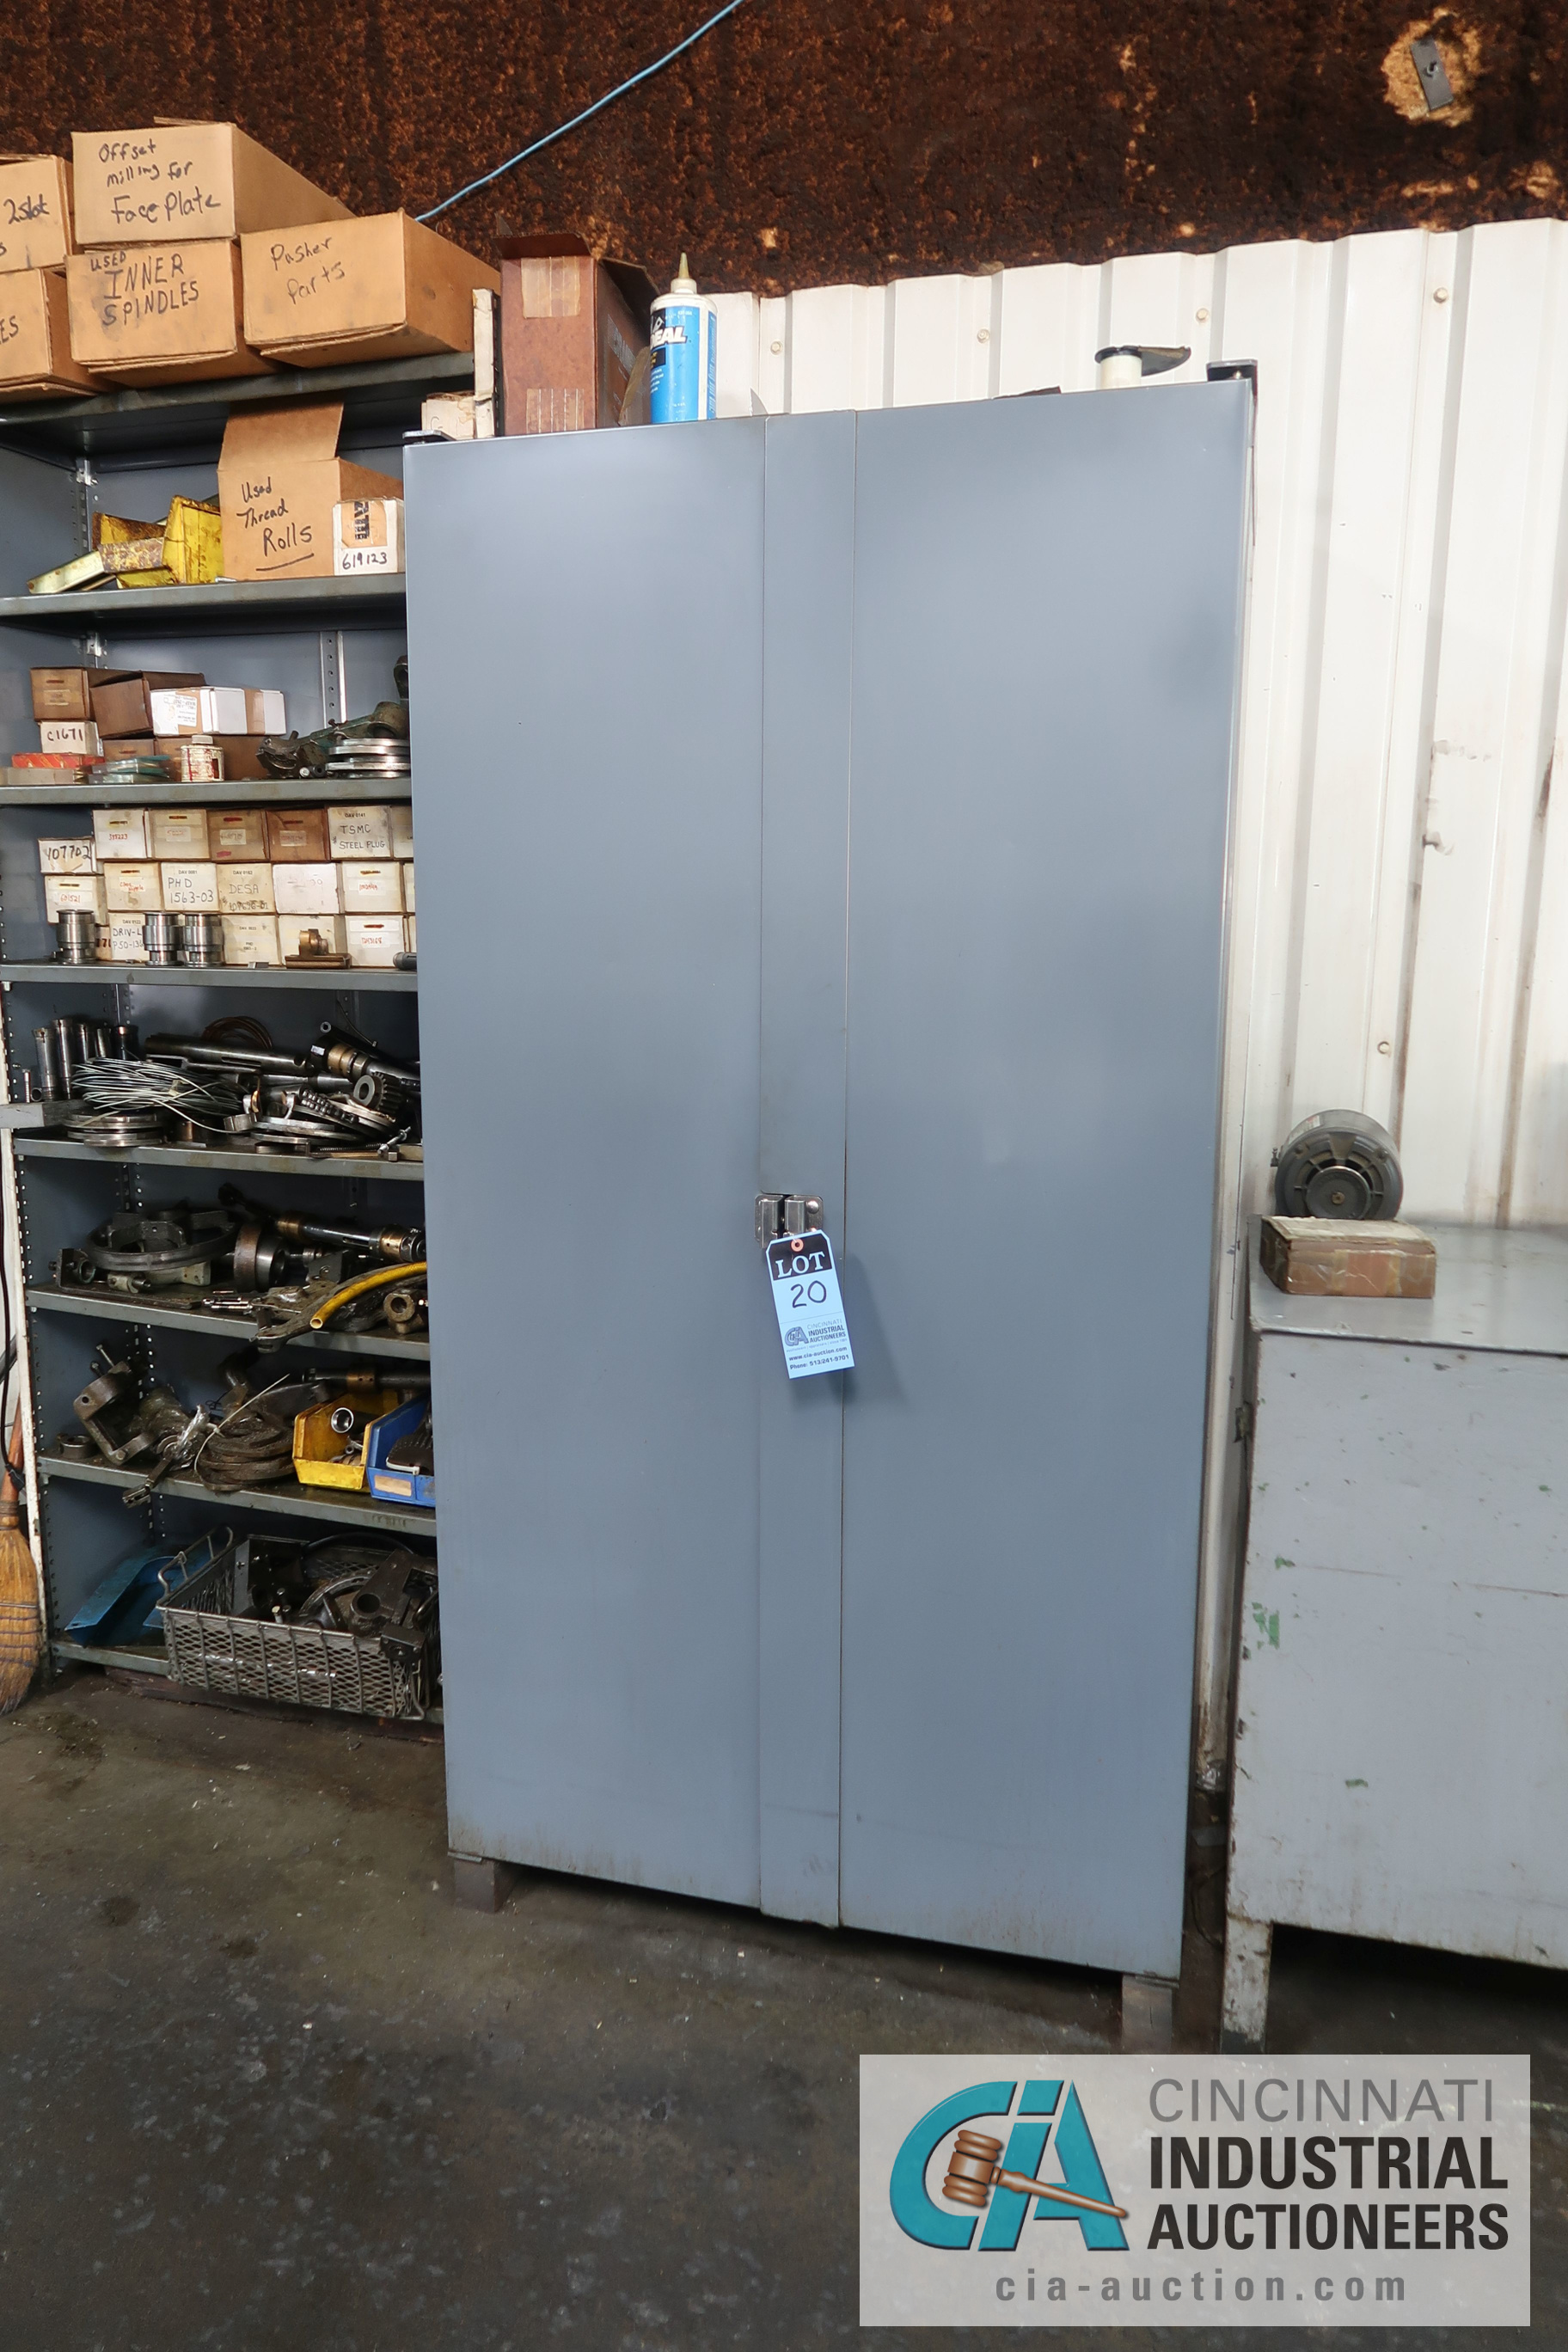 (LOT) MISCELLANEOUS ELECTRICAL AND HARDWARE WITH TWO-DOOR STRONGHOLD STYLE BIN CABINET